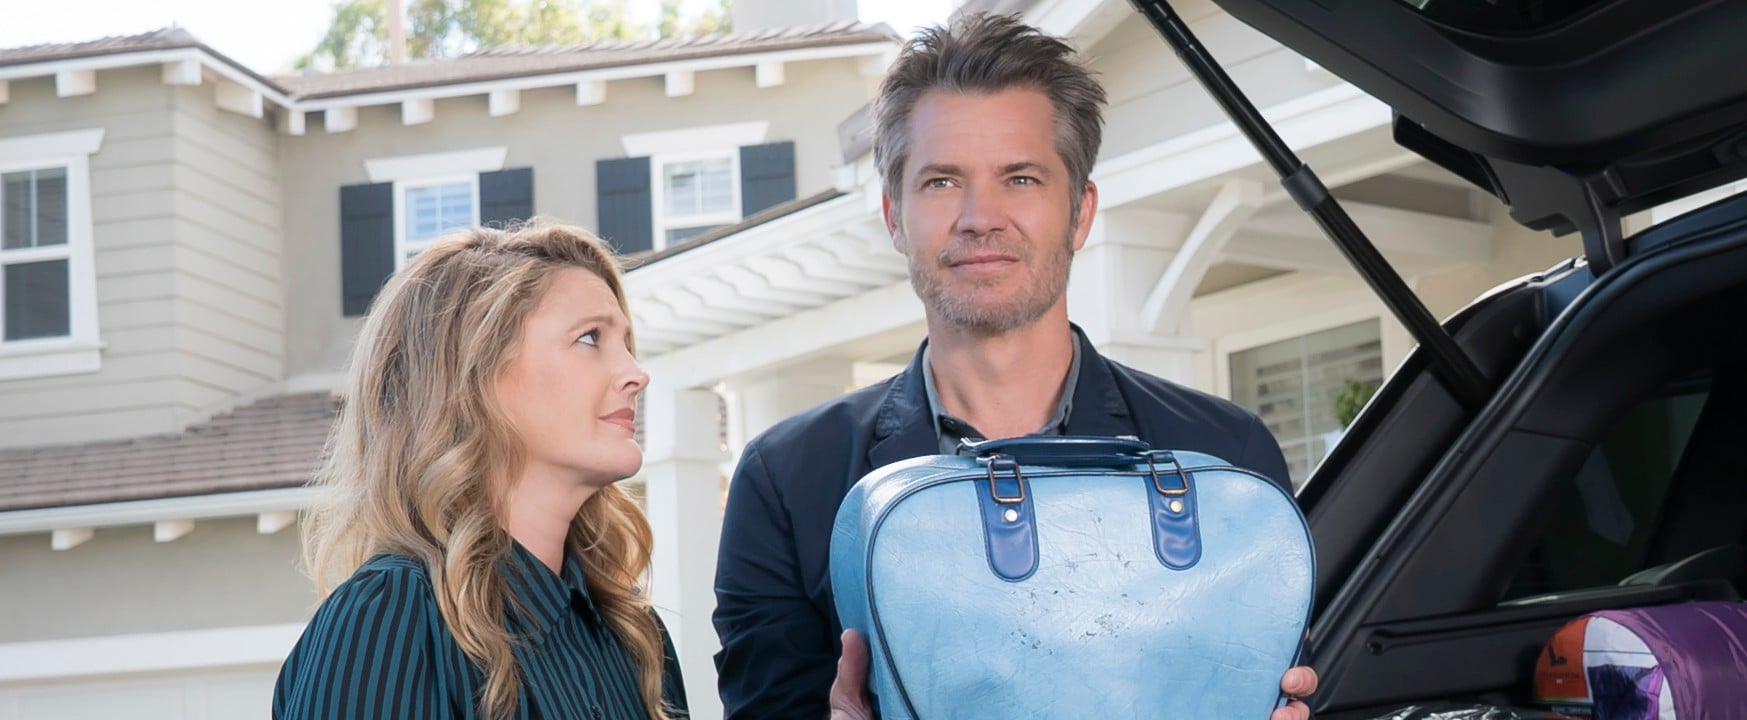 Drew Barrymore and Timothy Olyphant Make Santa Clarita Diet Season 2 a Gory Comedy Delight